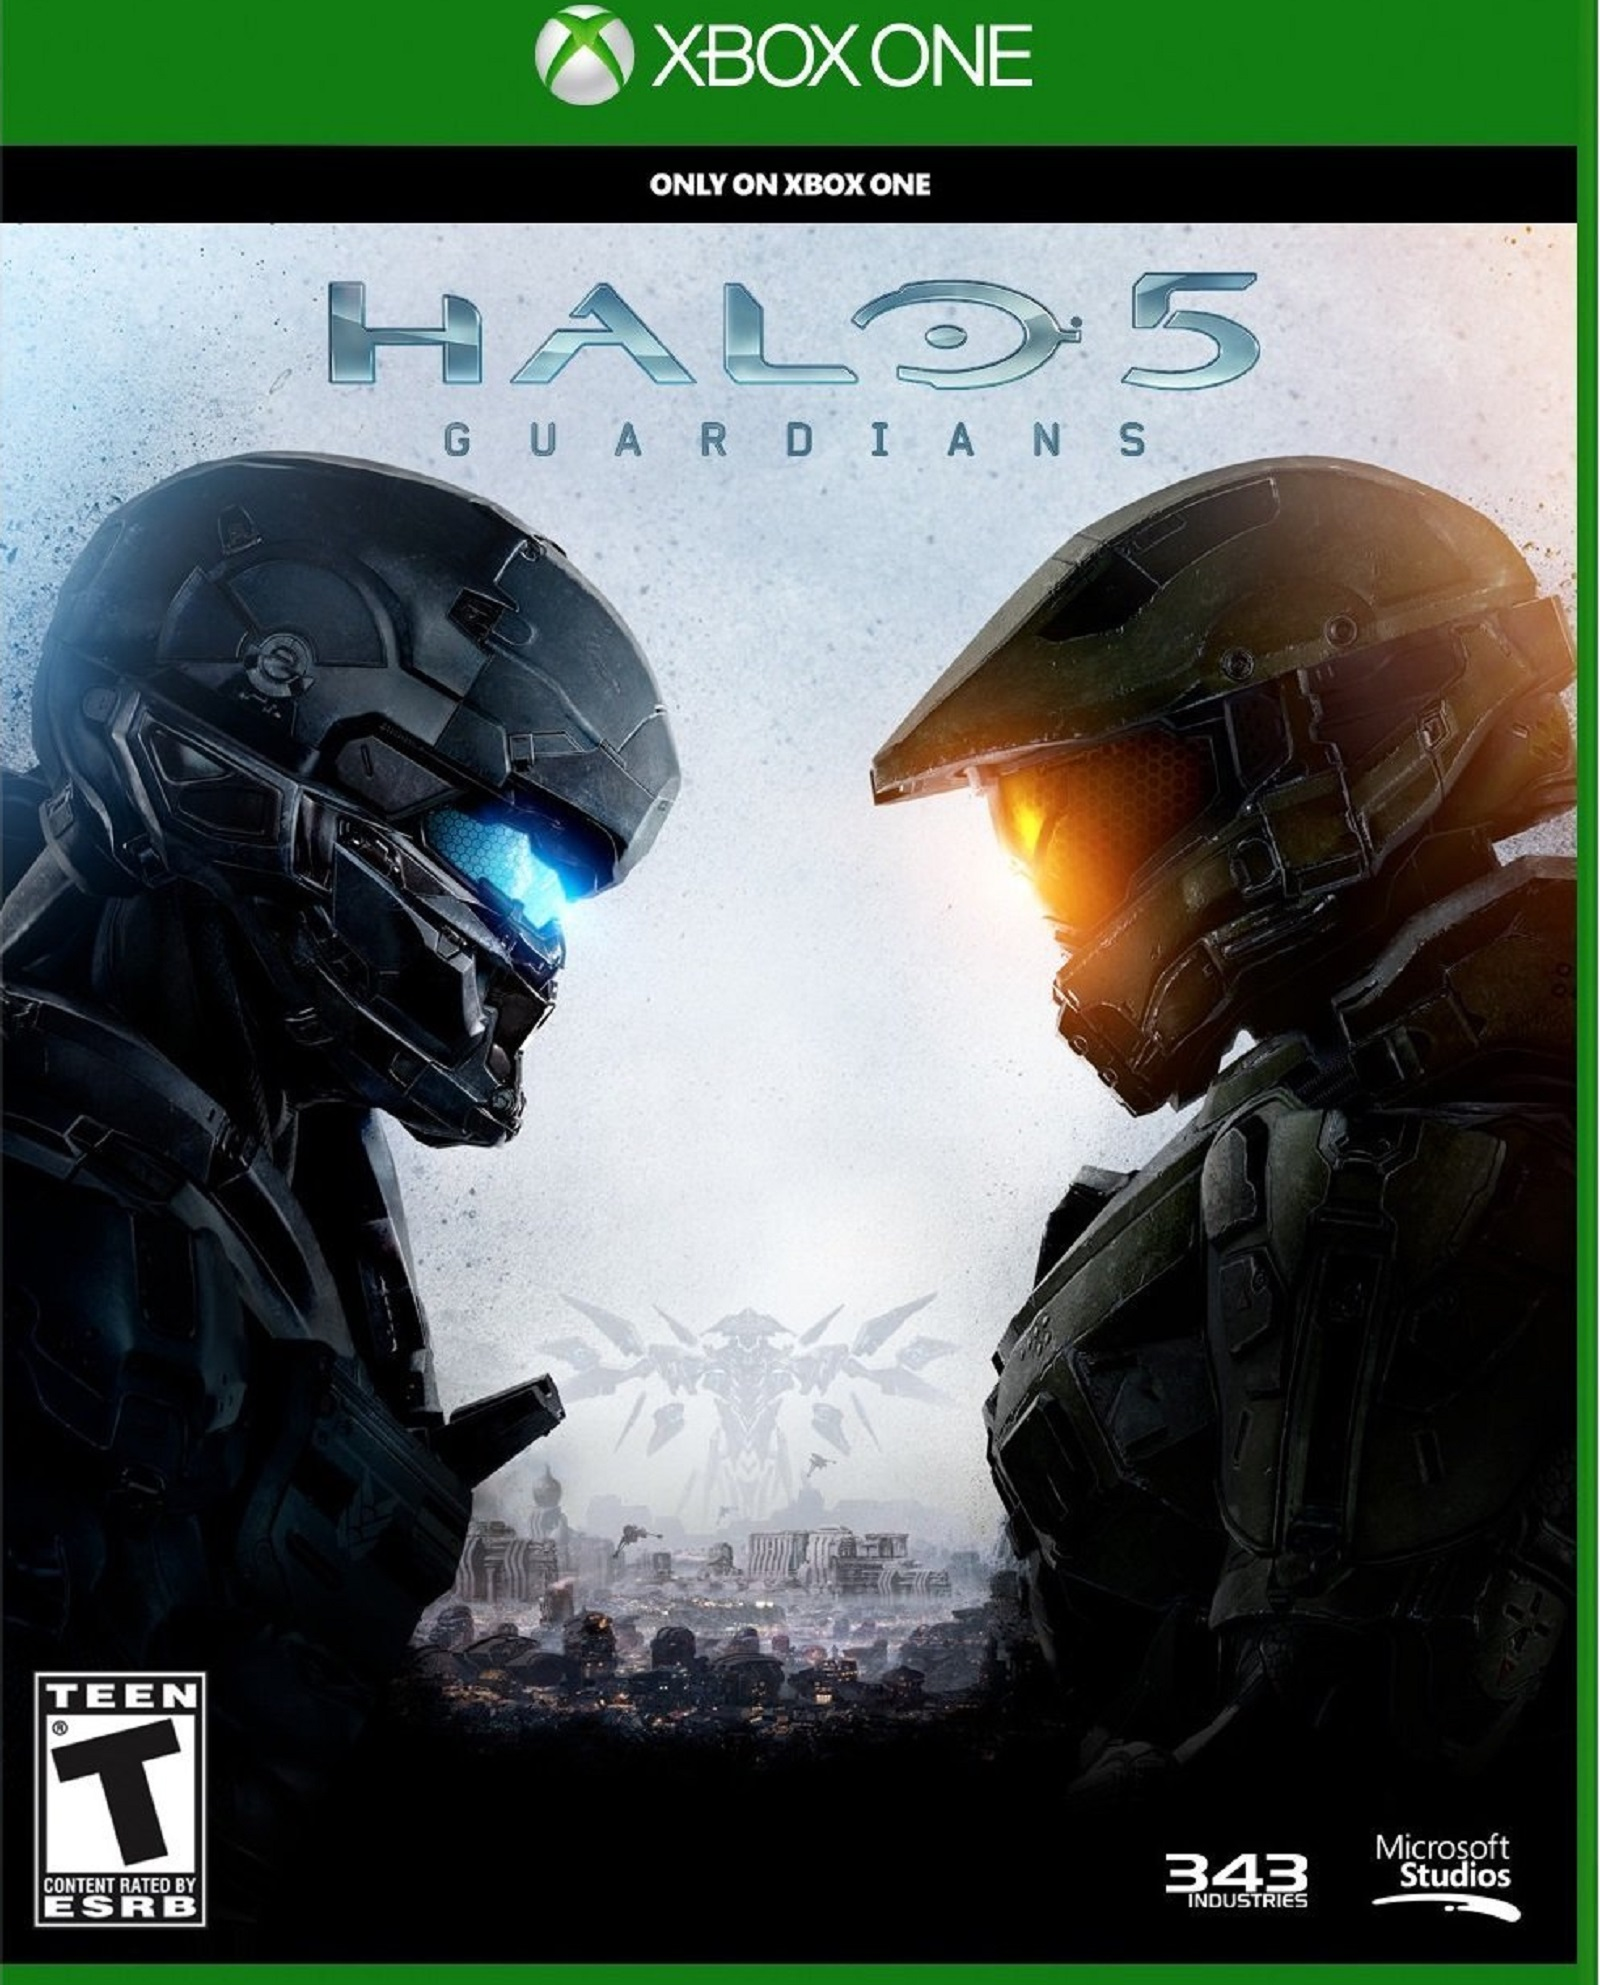 Xbox One Halo 5 Guardians USA Box Artwork T for Teen